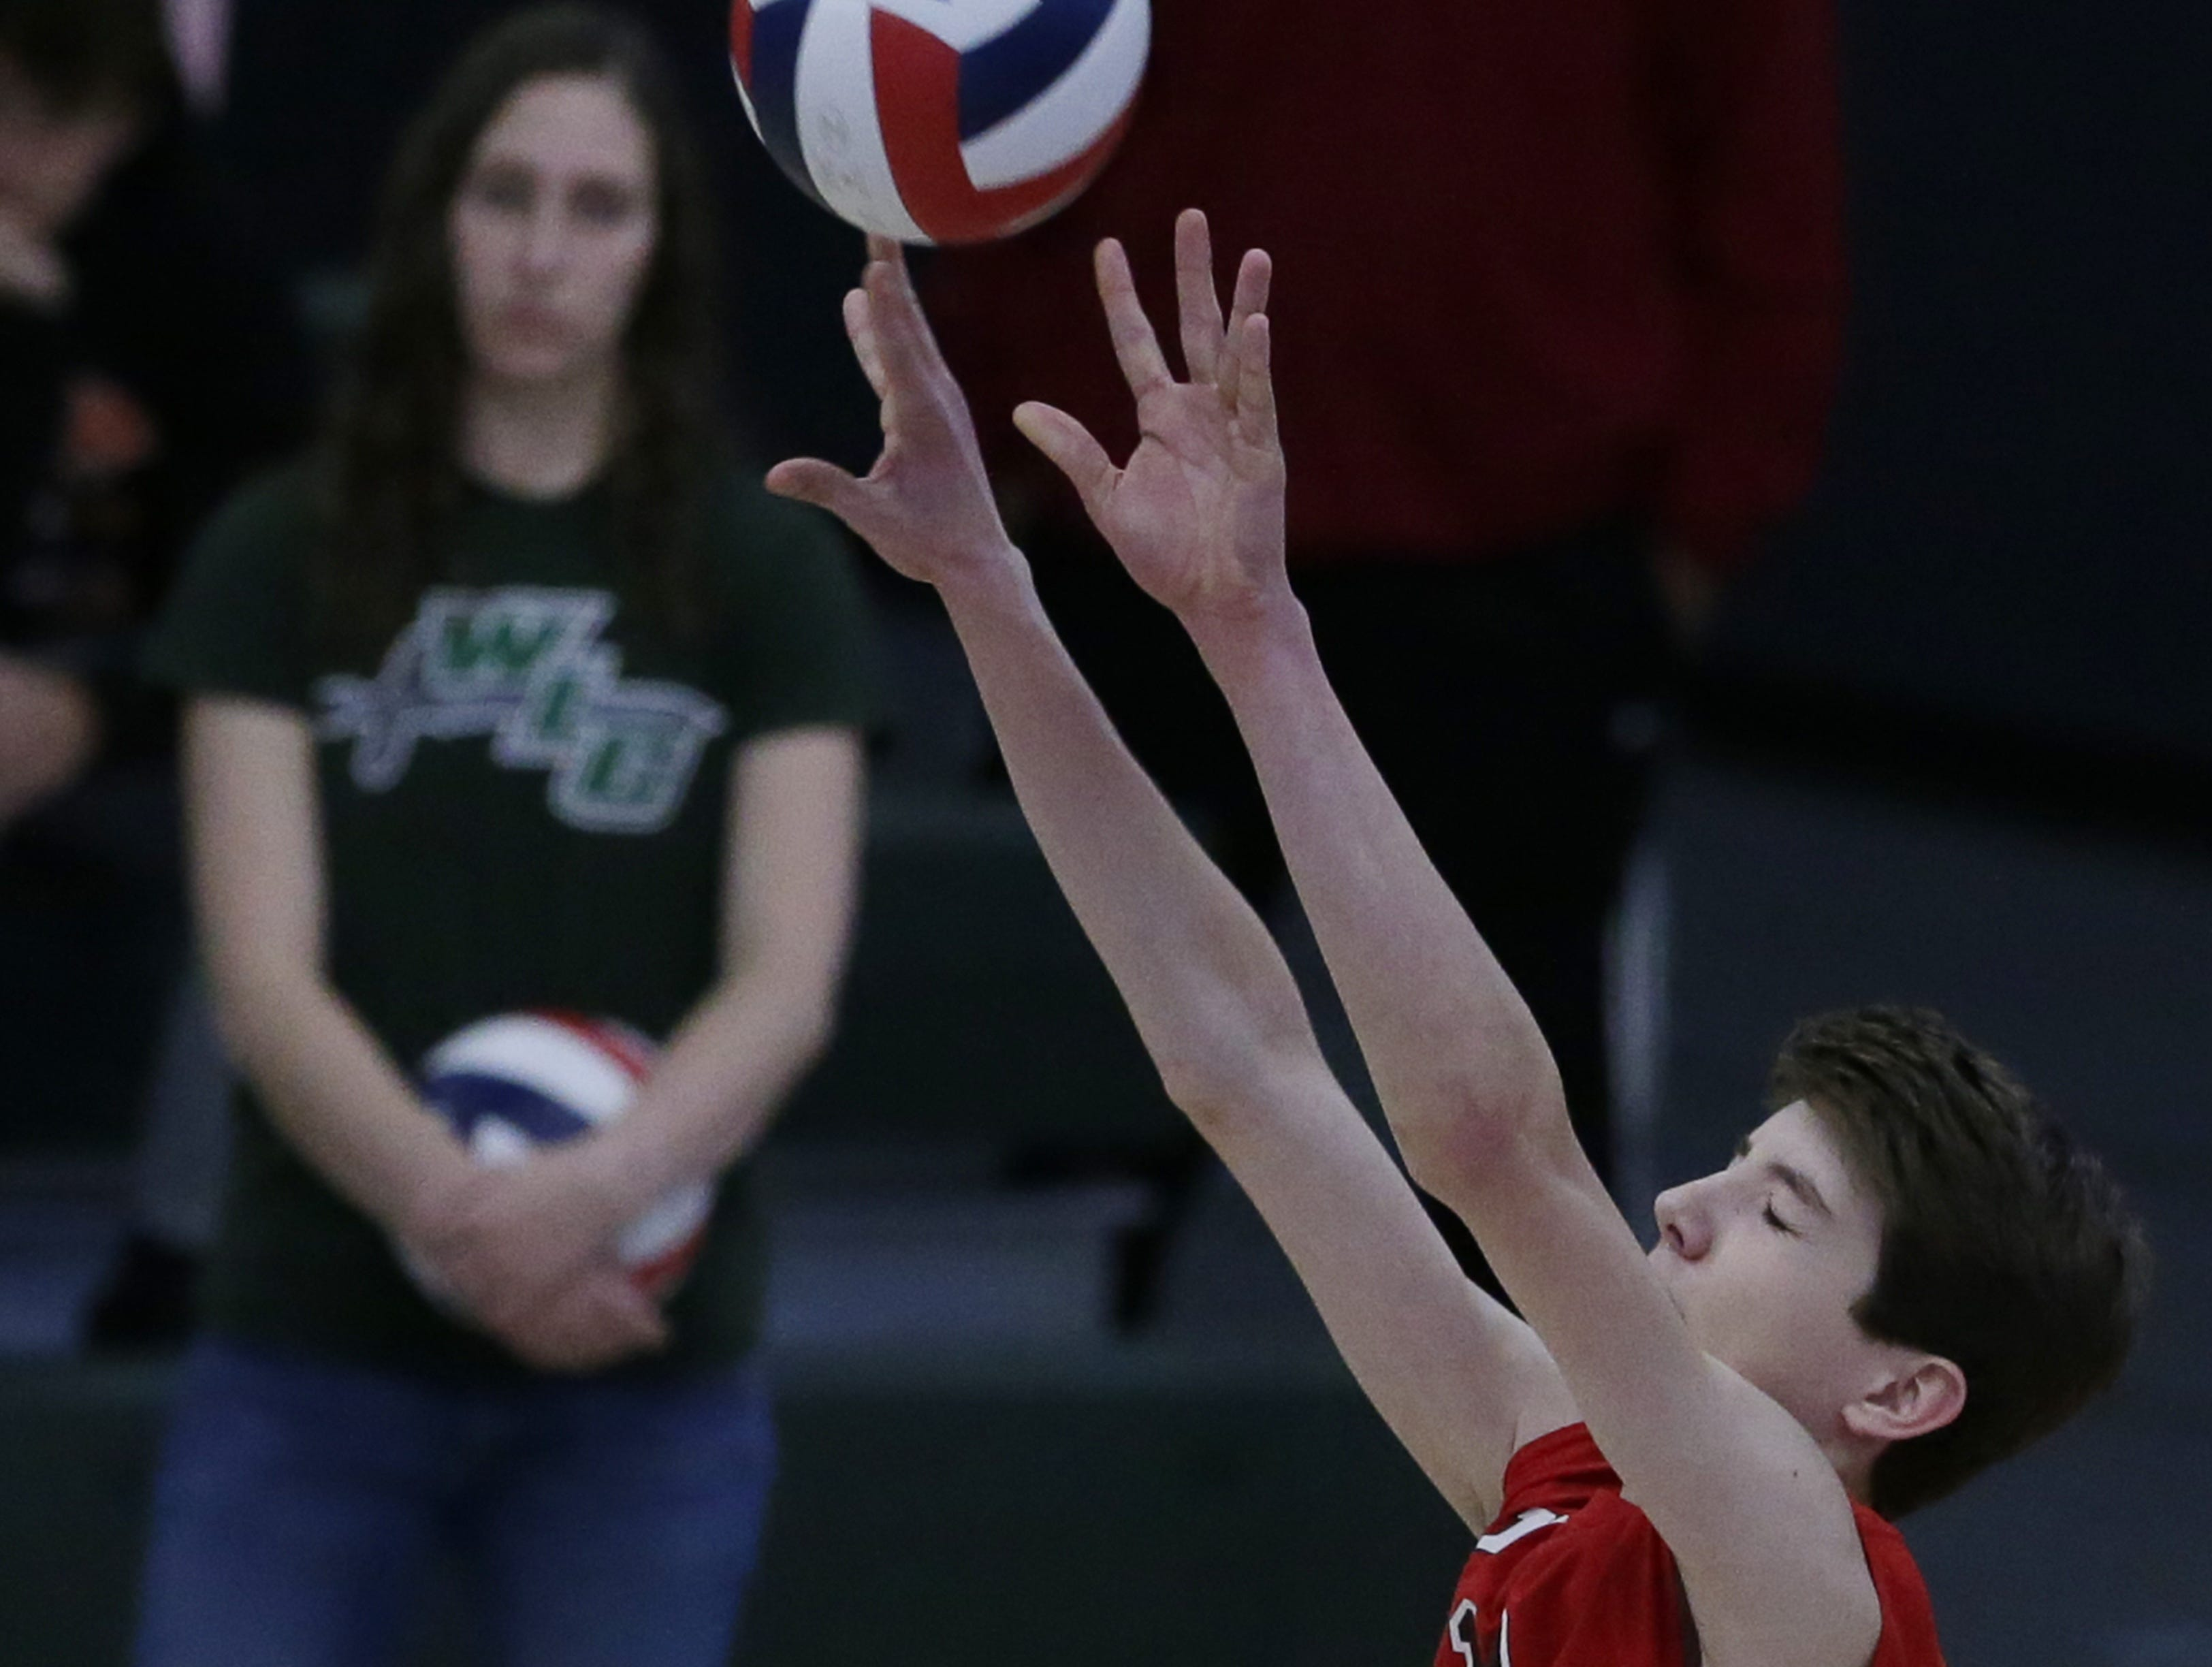 Kimberly's Parker Hietpas sets the ball after a hit during their game.  Kimberly Papermakers played Kenosha Indian Trail Hawks in Division 1 WIAA boys volleyball playoff semi-final, Saturday, November 10, 2018 at Wisconsin Lutheran College in Milwaukee, Wis. Joe Sienkiewicz/USA Today NETWORK-Wisconsin